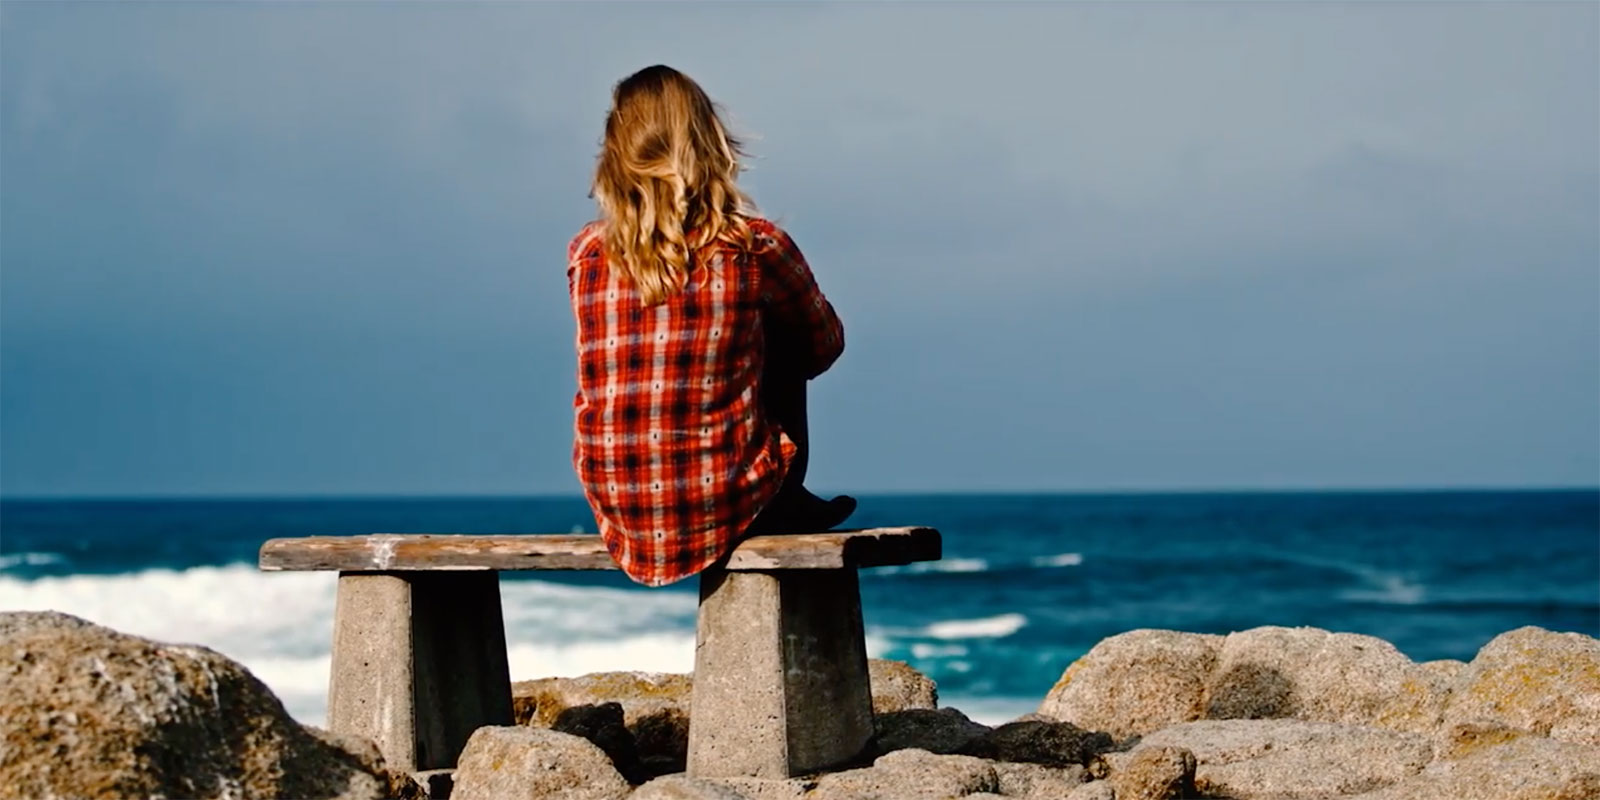 woman sitting on a bench looking at the ocean